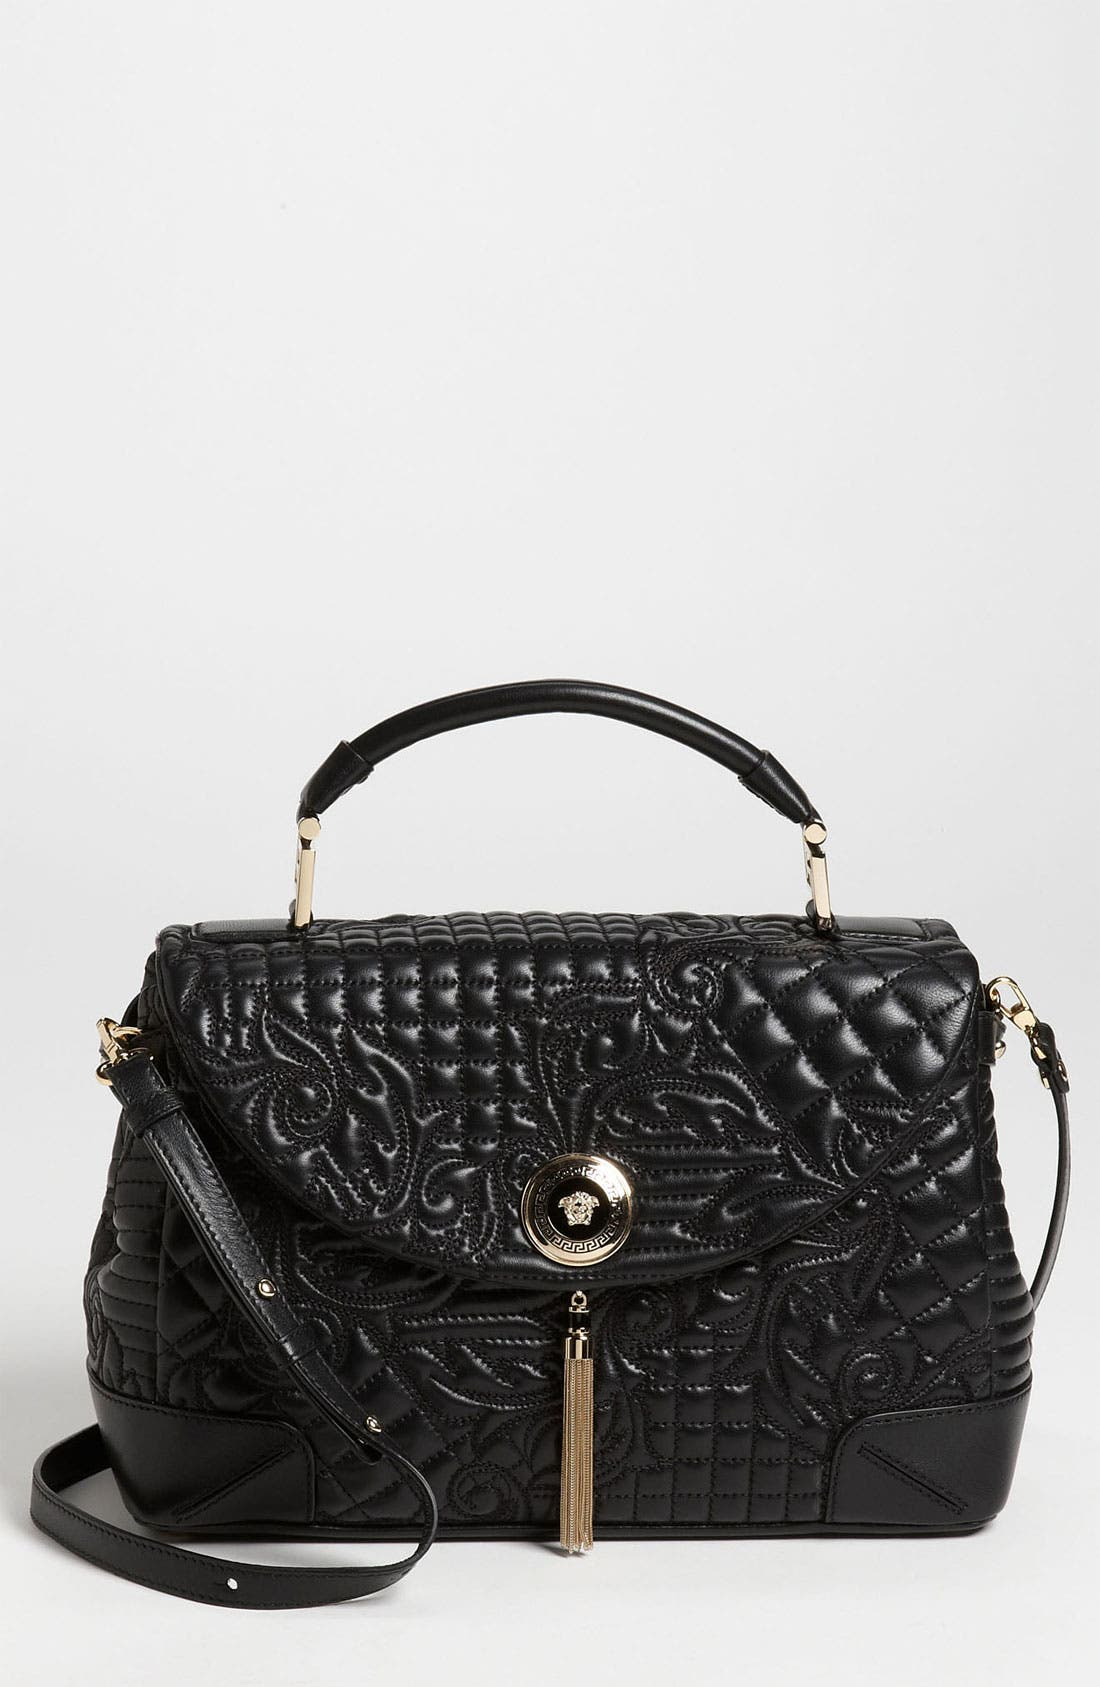 Main Image - Versace 'Vanitas' Embroidered Nappa Lambskin Leather Satchel